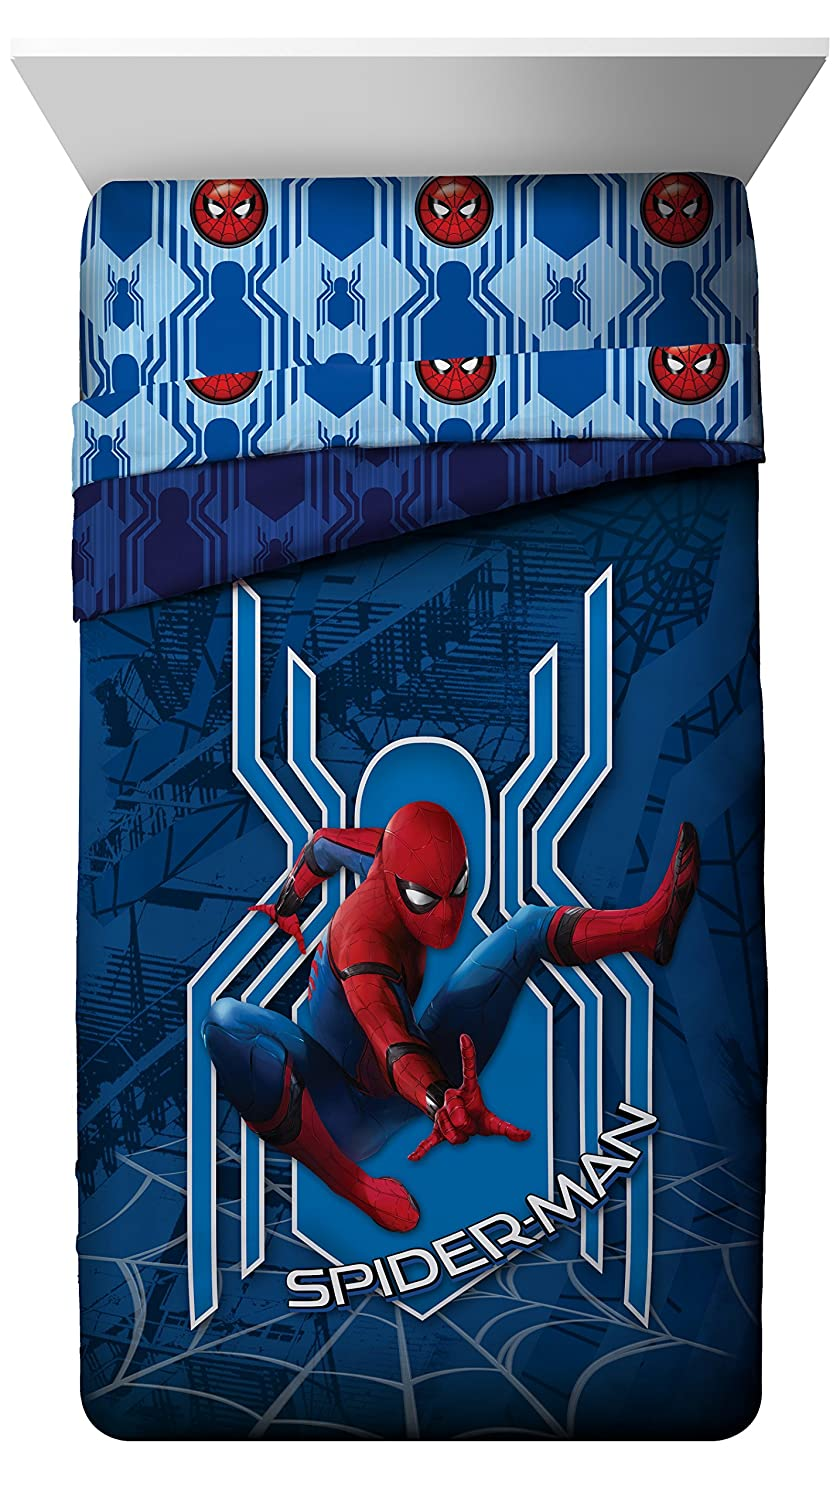 Marvel Spiderman Homecoming Reversible Twin/Full Comforter, T/F Jay Franco and Sons Inc. JF24040ECD